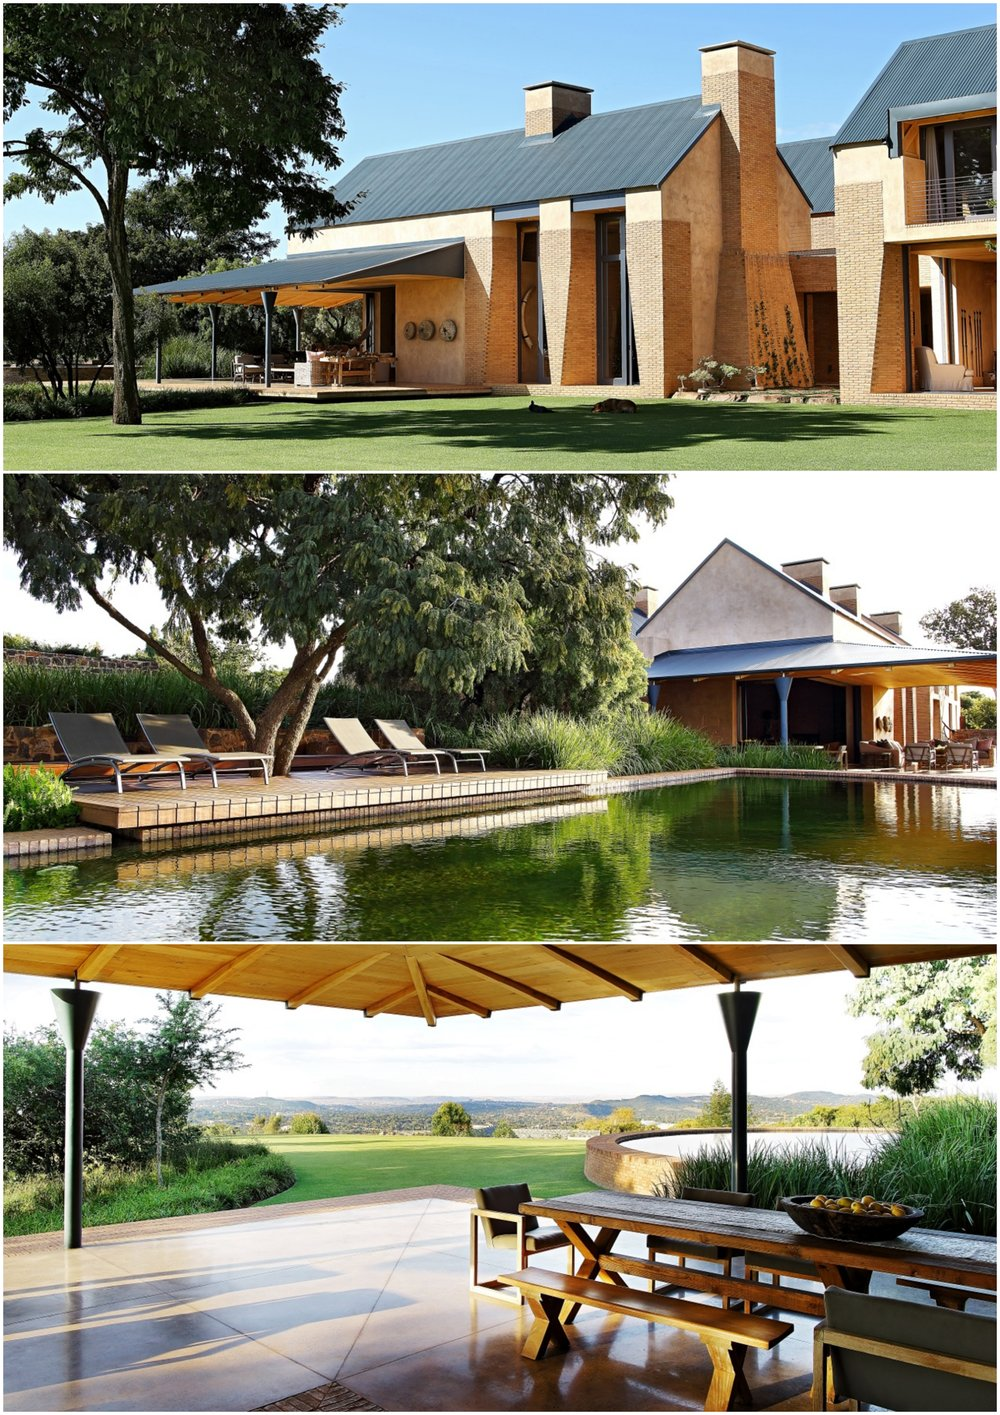 The farmhouse is situated on the crest of a hill to the southeast of the traditional city centre of Pretoria. The topographical position of the site enables nearly 270 degree views to the west and the north, as well as in an easterly direction. The density of the vegetation of the lower-lying areas is such that one is an a rural area, specifically during the day. The uniqueness of the site and nostalgia for what was or could be within the exclusivity of this specific residential area could be considered as some of the driving forces for the design of the building. The attention to detail - from the swimming pool to the staircase, to the upper level in the 'silo', to the shaping of the thick brick walls, to the solid wood roof trusses - is impressive and obviously made to last beyond just a couple of generations.